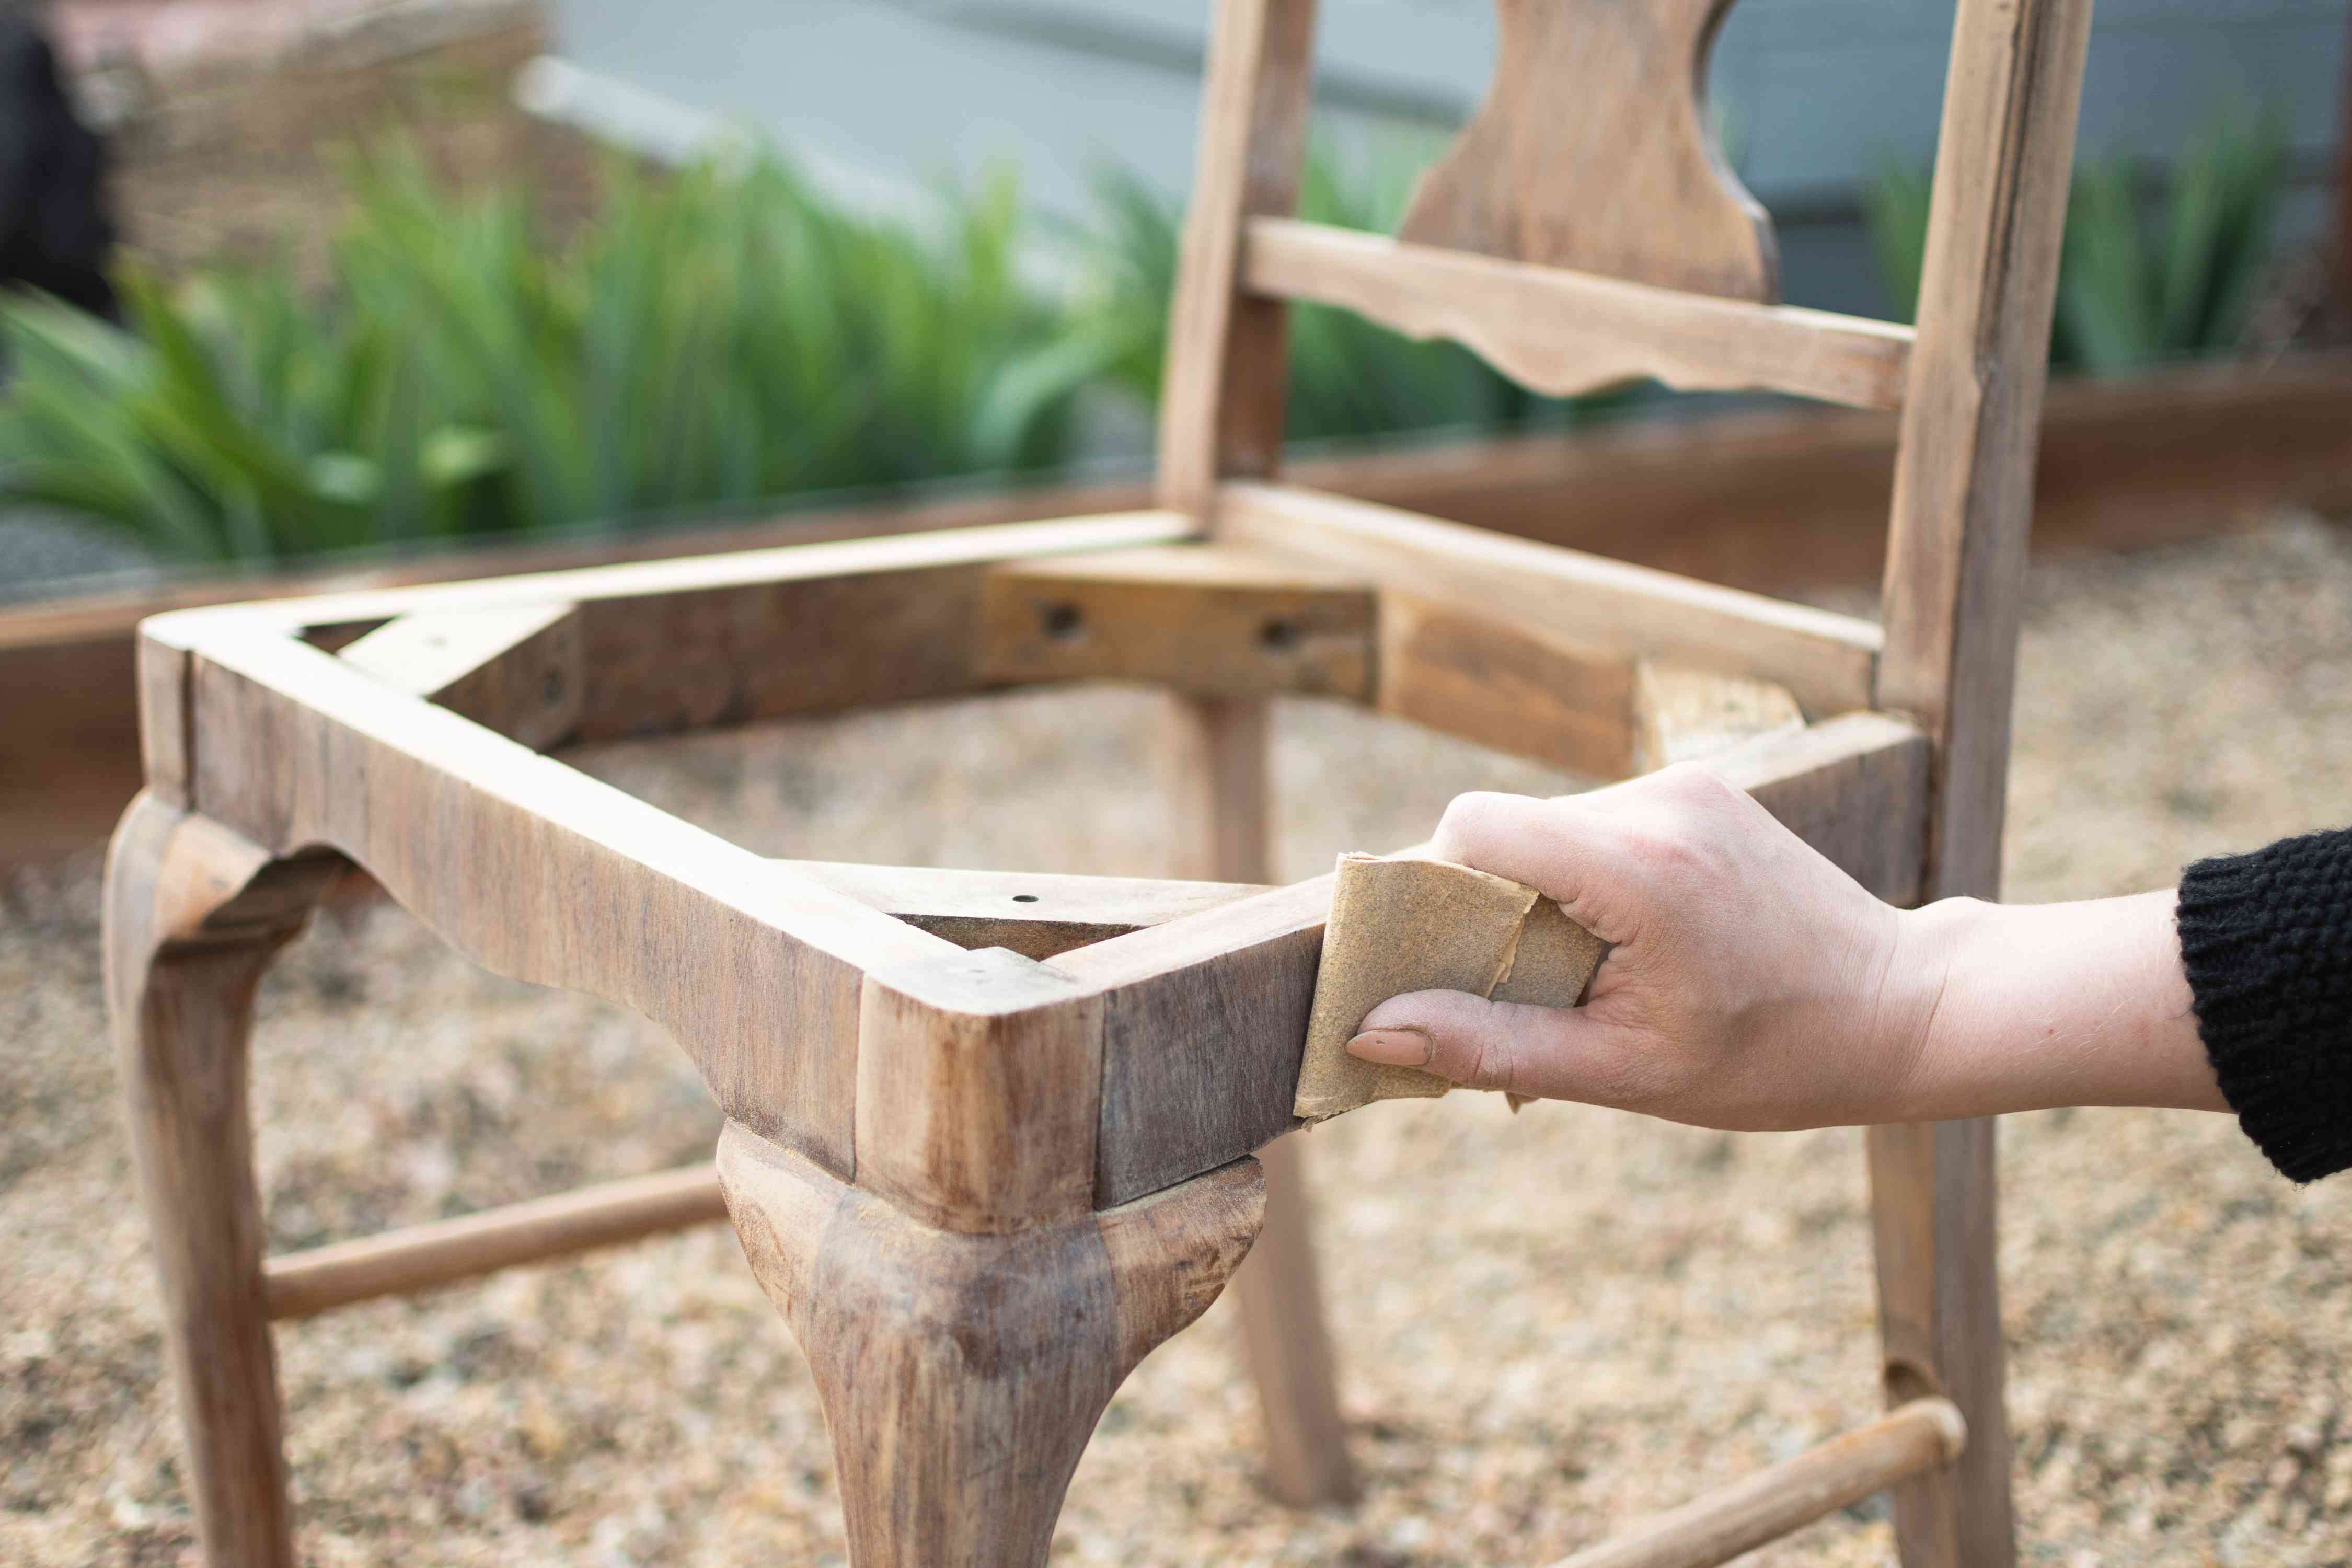 Wooden chair sanded down with sandpaper